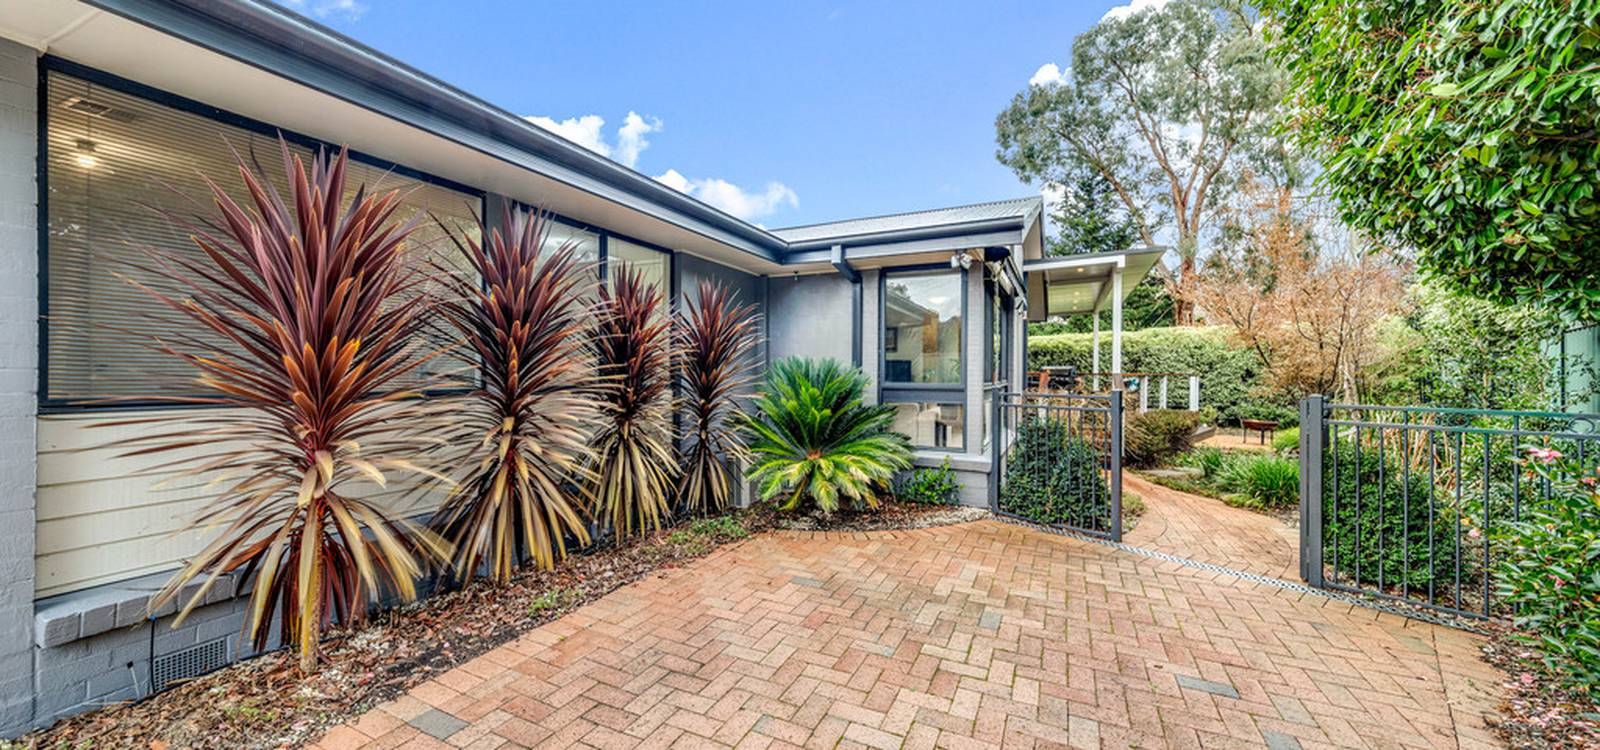 11 Orion Place GIRALANG, ACT 2617 - photo 1